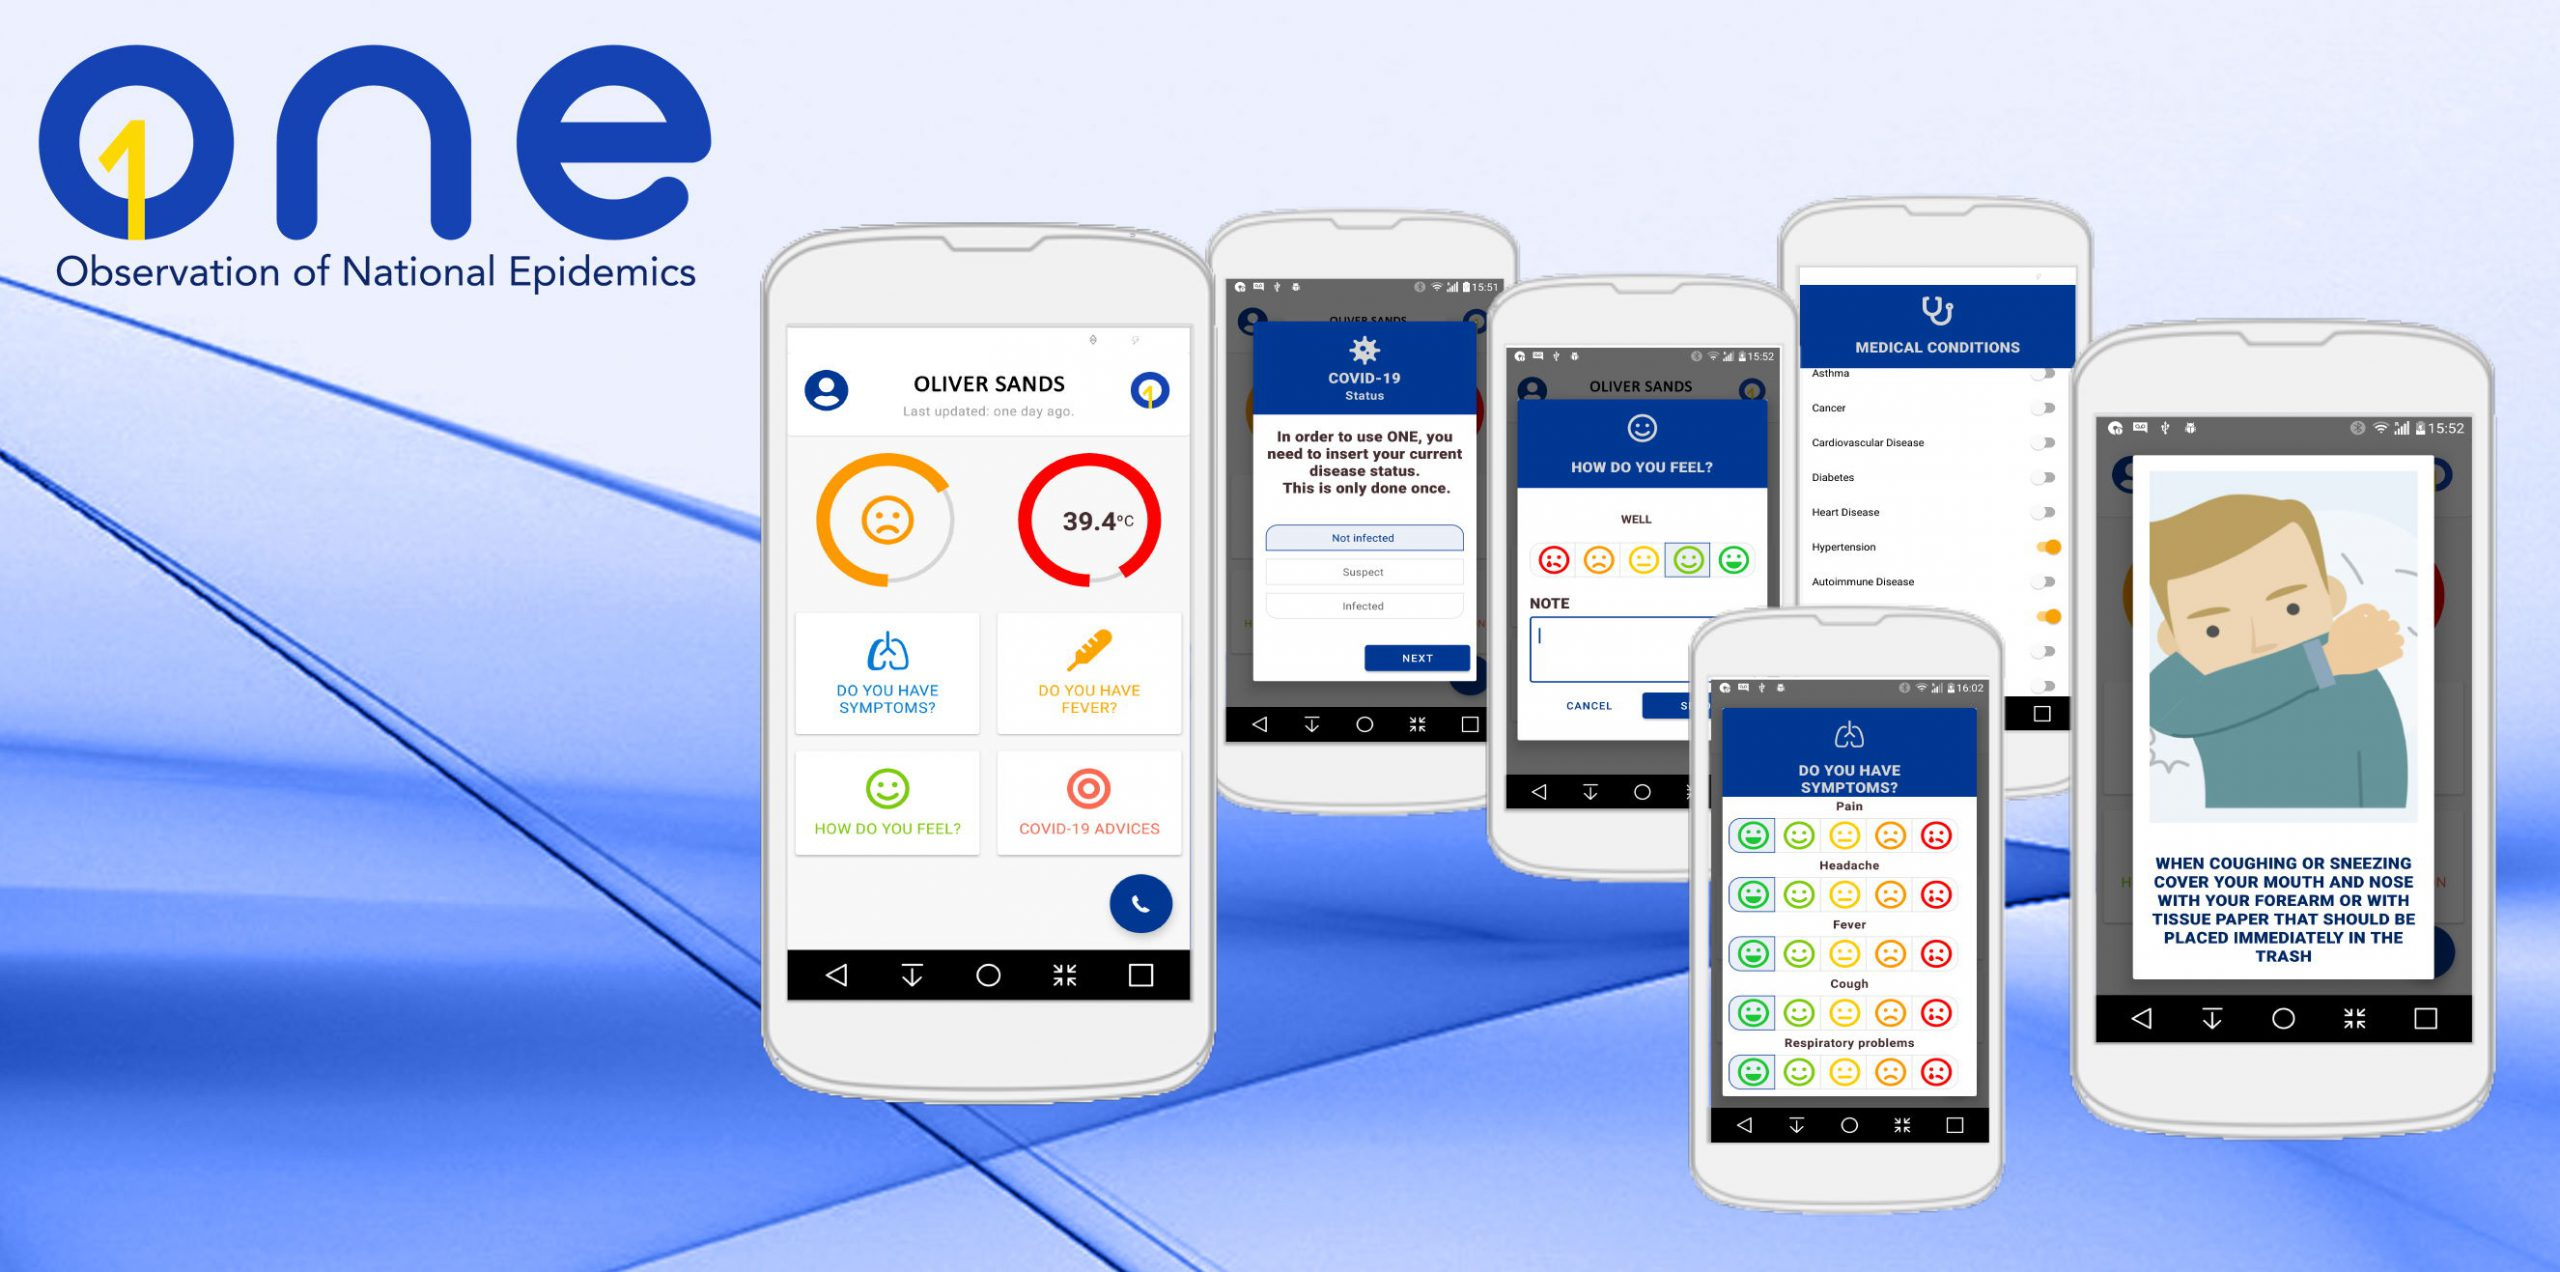 From left to right, the image presents (i) the ONE dashboard, displaying the latest mood and the latest temperature measurement reported by the patient, and the buttons to report on temperature levels, mood state and severity of symptoms and to read the relevant COVID-19 recommendations; (ii) the ONE COVID-19 status screen, in which patients identify themselves as infected, not infected or suspected of being infected with the COVID-19 disease; (iii) the ONE mood screen, showing a smiley Likert scale to establish the prevailing patient mood; (iv) the ONE symptoms displaying of the specific COVID-19 symptoms, to select the appropriate severity level using a smiley Likert scale; (v) the ONE medical conditions monitor presenting the pre-existing medical conditions of the patient; and (vi) the ONE COVID-19 advice card, providing guidance through text and a visual aid on how to proceed when coughing or sneezing to mitigate the risk of transmitting the COVID-19 disease.